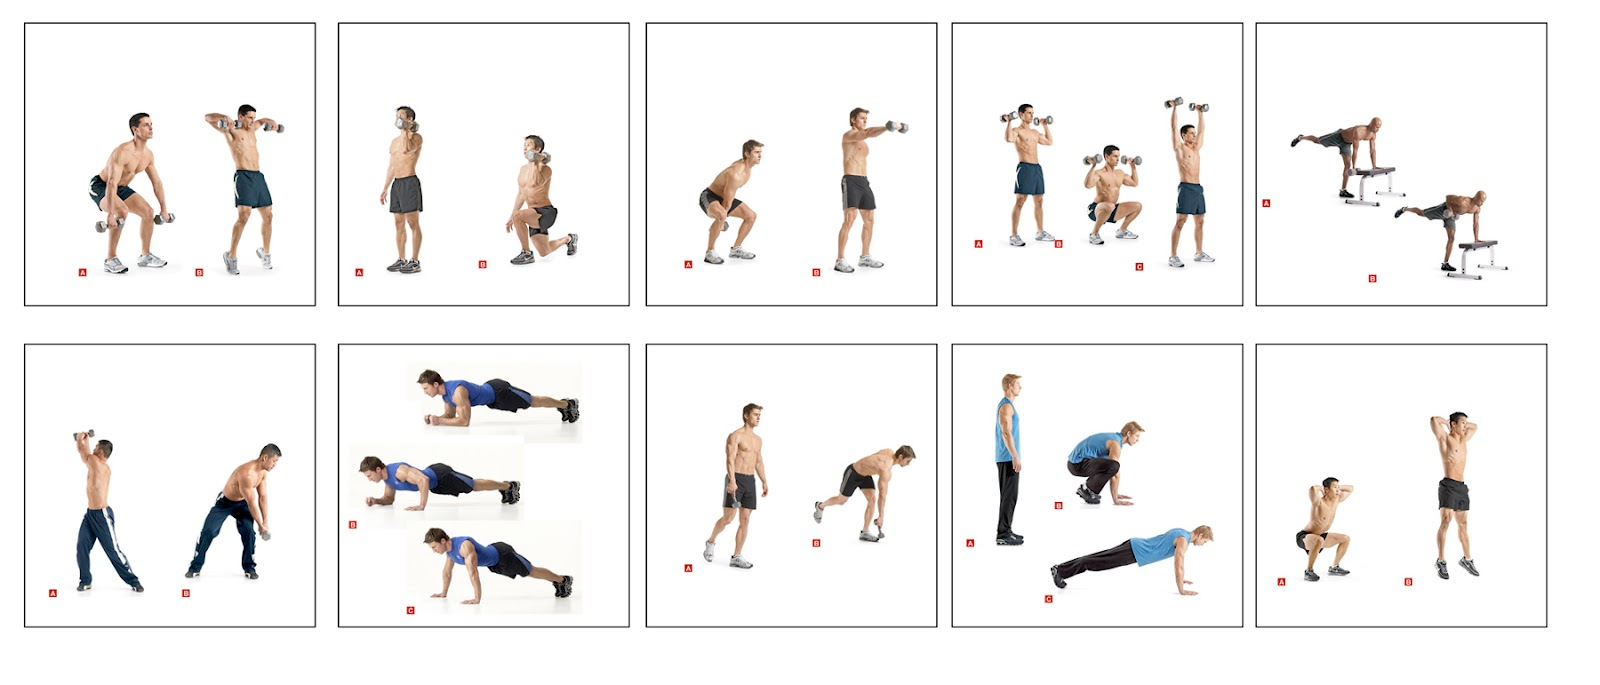 photograph relating to Spartacus Workout Printable referred to as 100+ Spartacus Exercise Timing yasminroohi